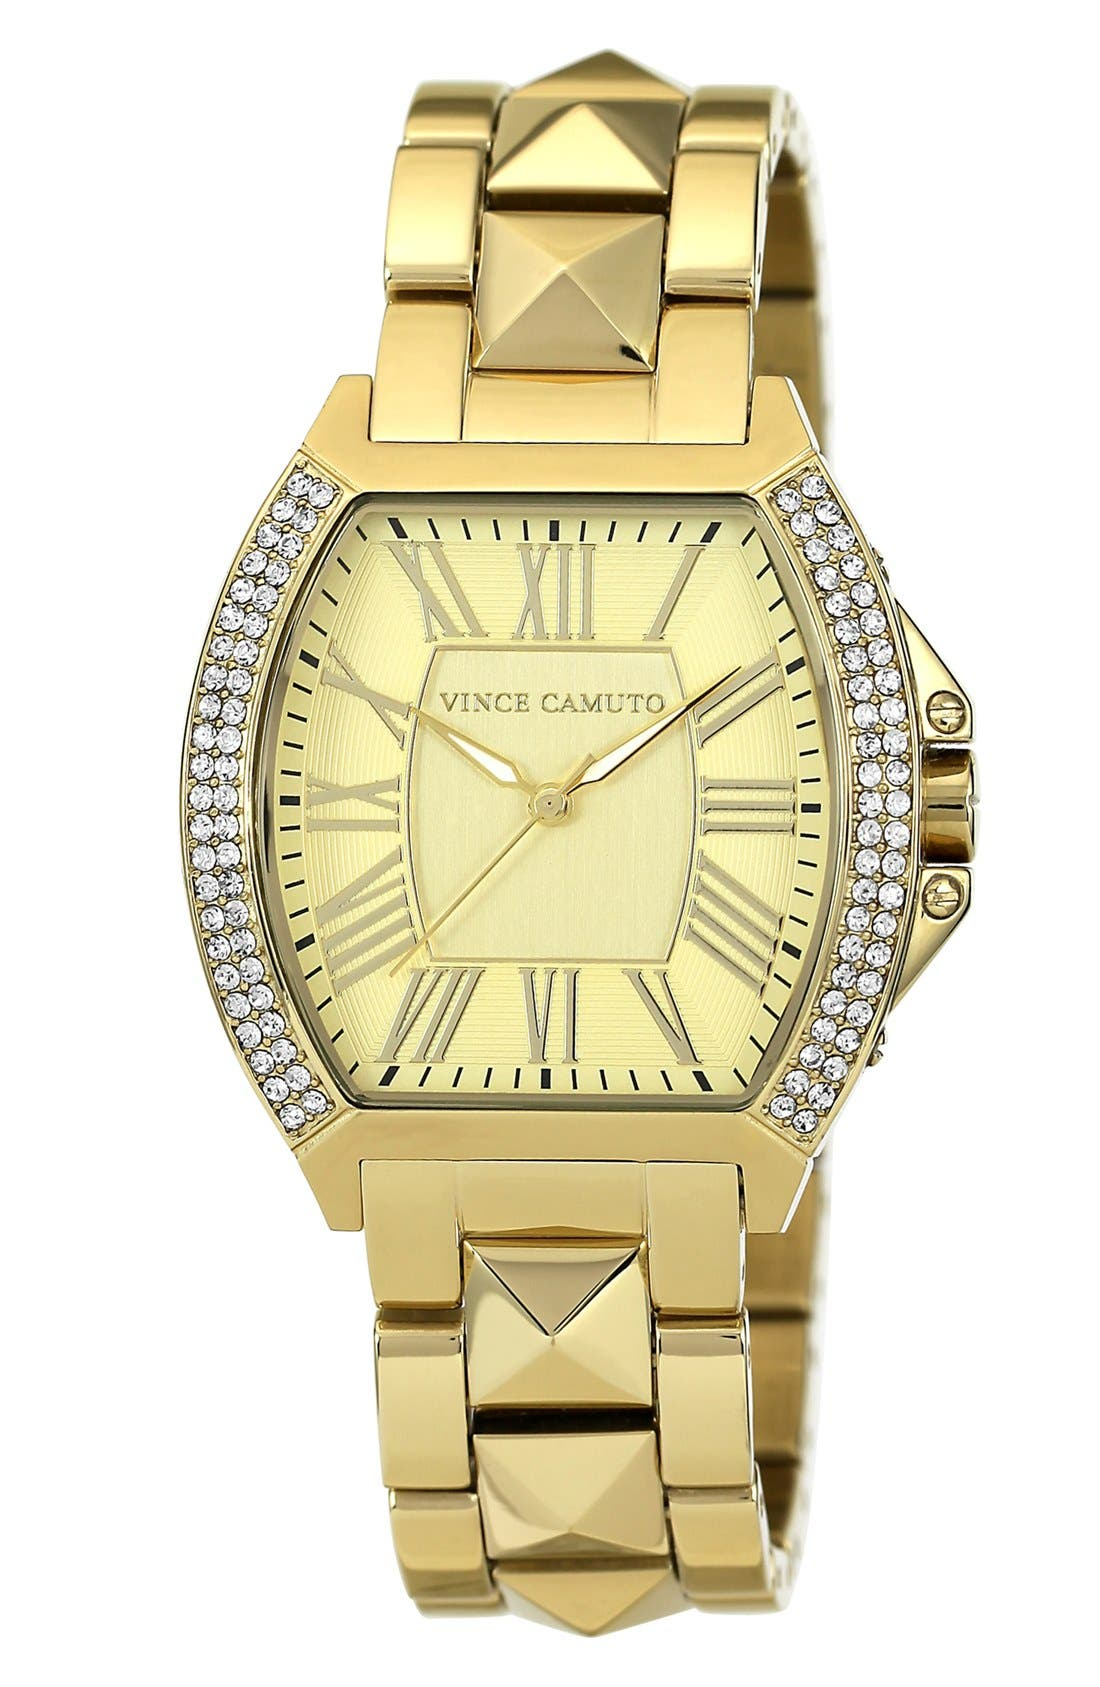 Alternate Image 1 Selected - Vince Camuto Crystal Bezel Tonneau Watch, 35mm x 41mm